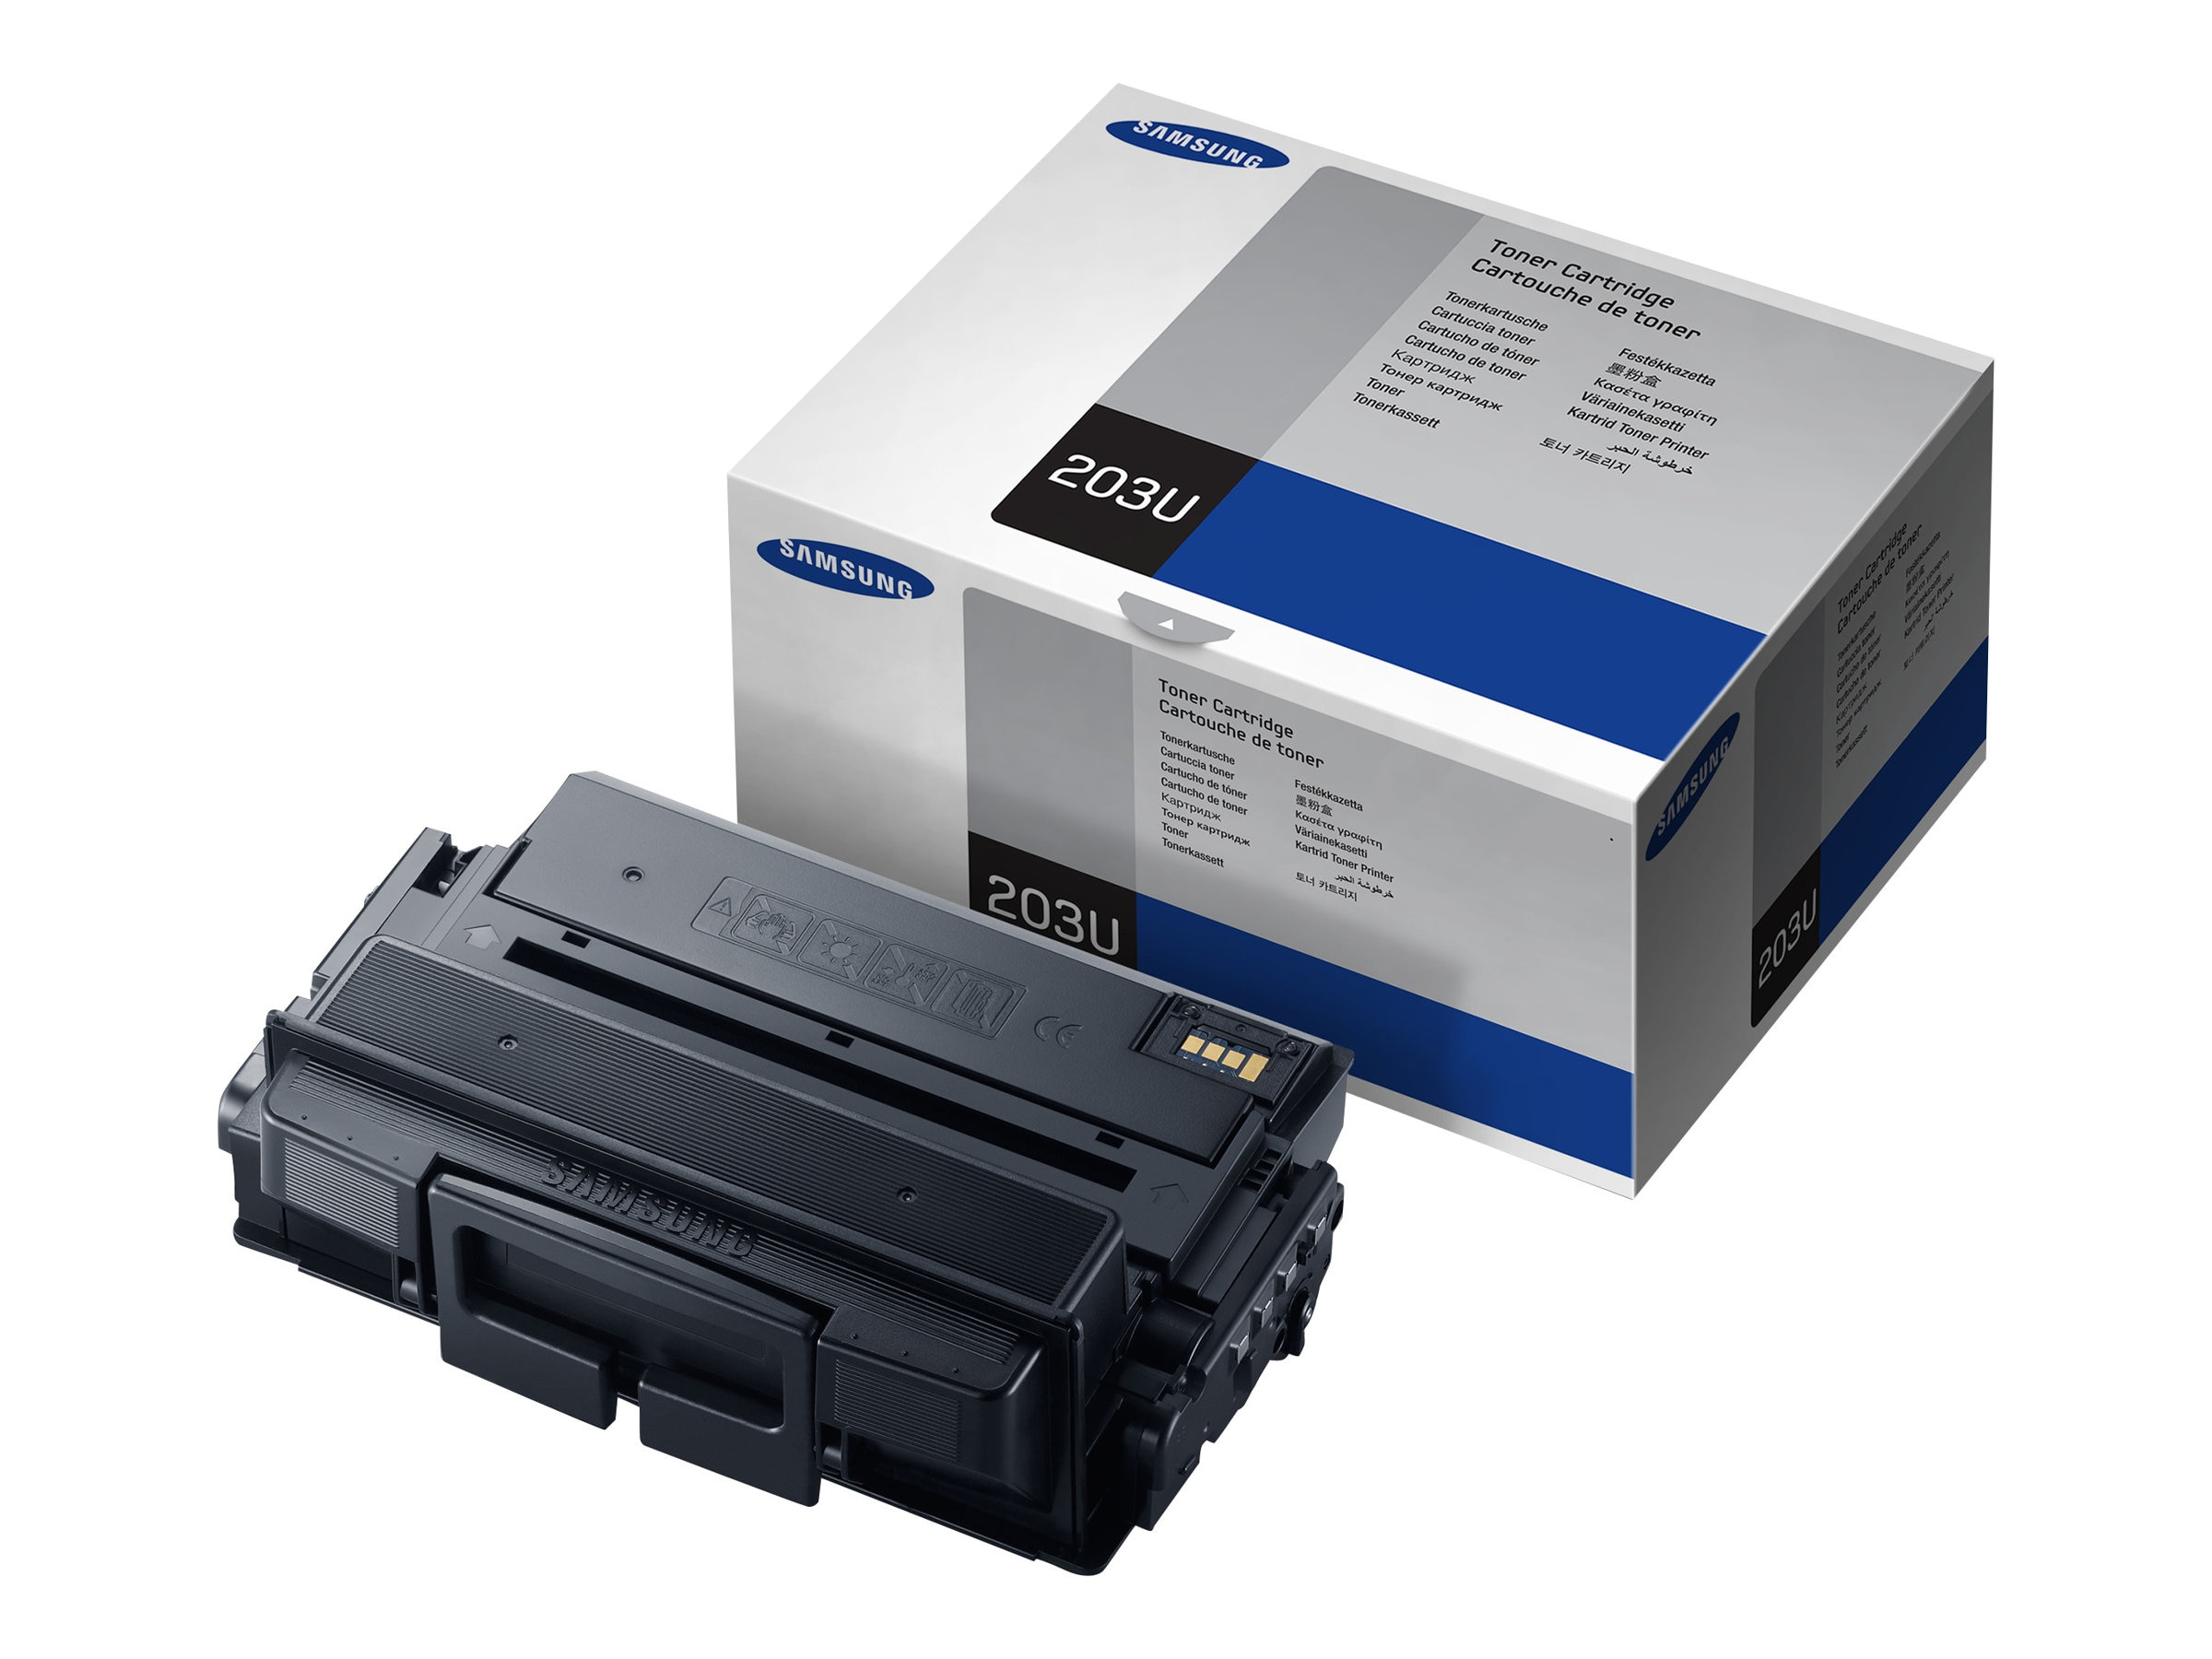 Samsung Black Ultra High Yield Toner Cartridge for Multifunction ProXpress M4070FR & ProXpress M4020ND, MLT-D203U/XAA